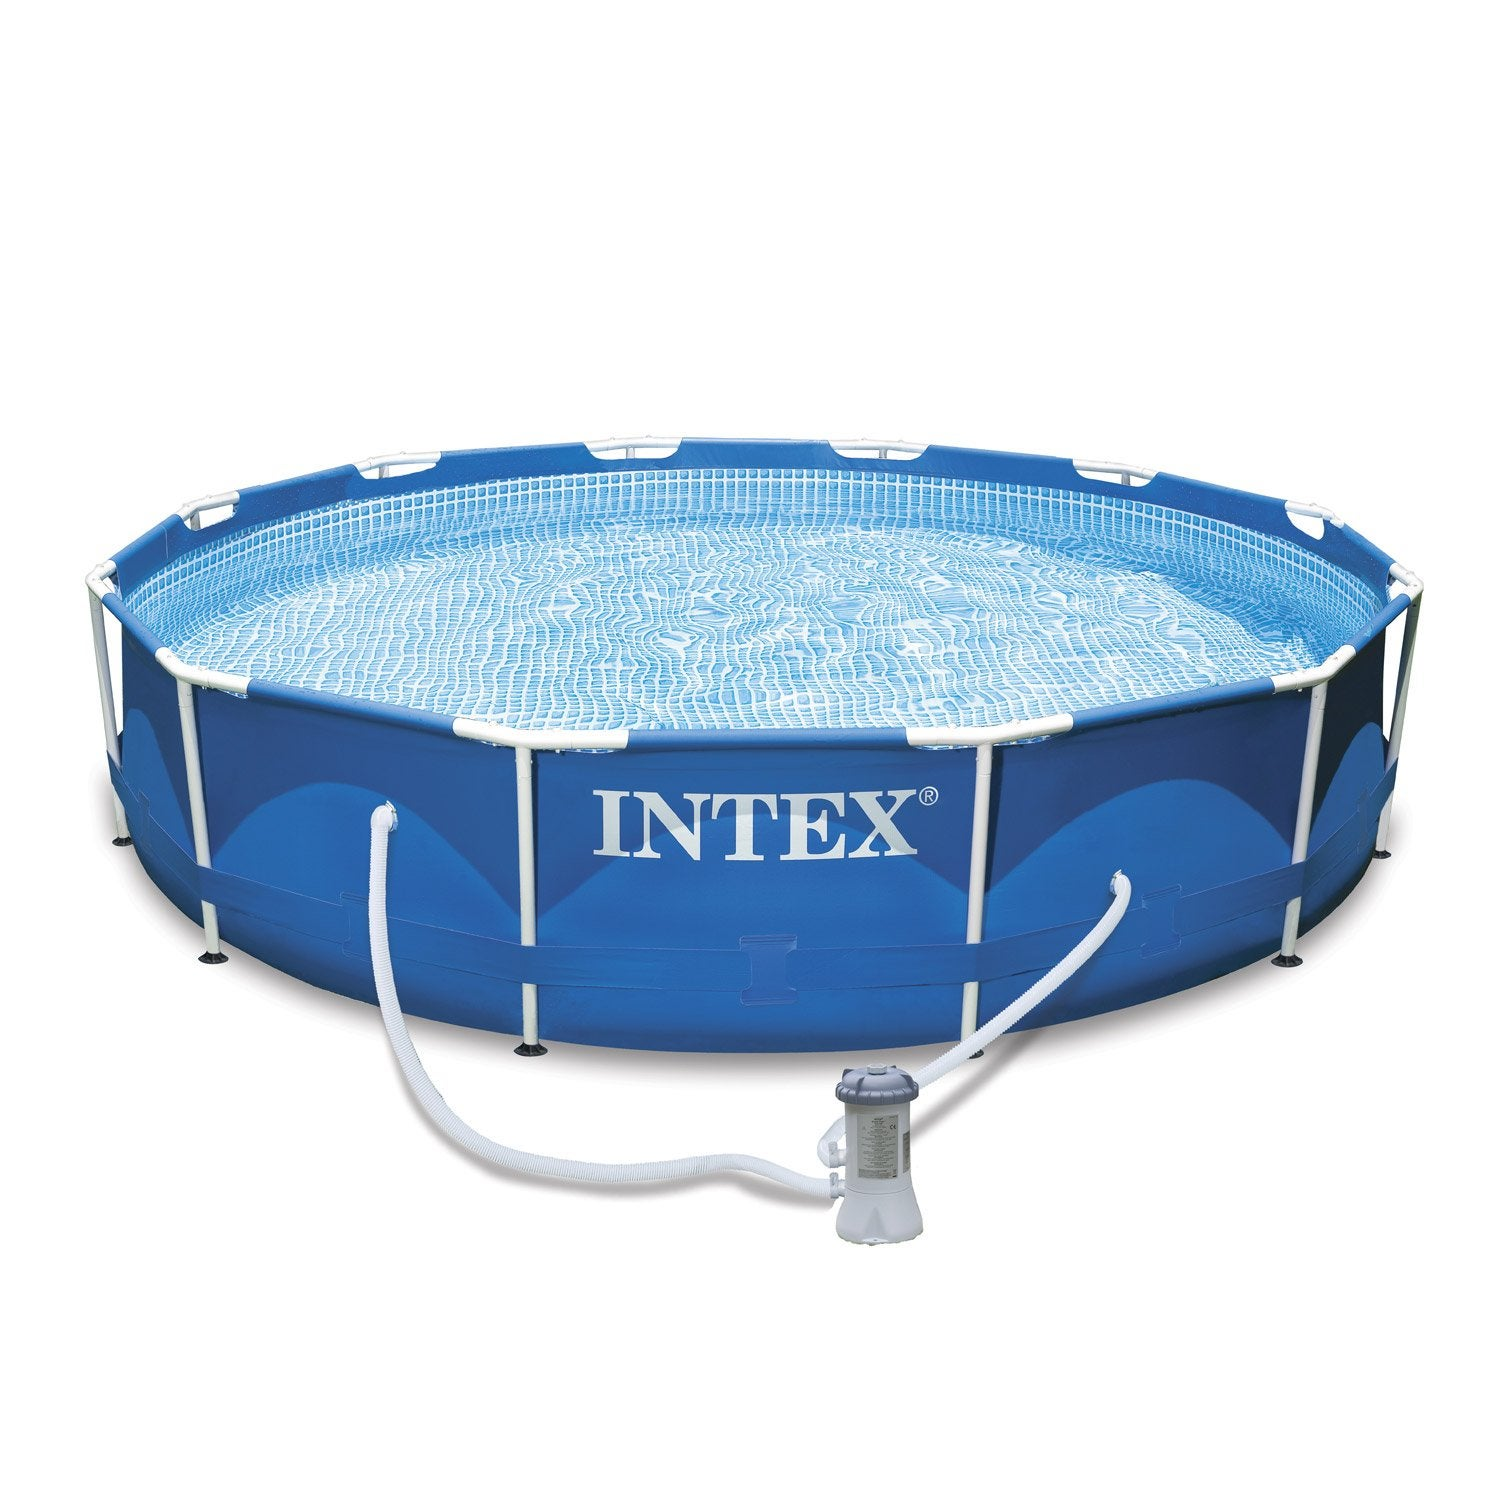 Piscine hors sol autoportante tubulaire 305x76 cm intex - Piscine hors sol intex ...